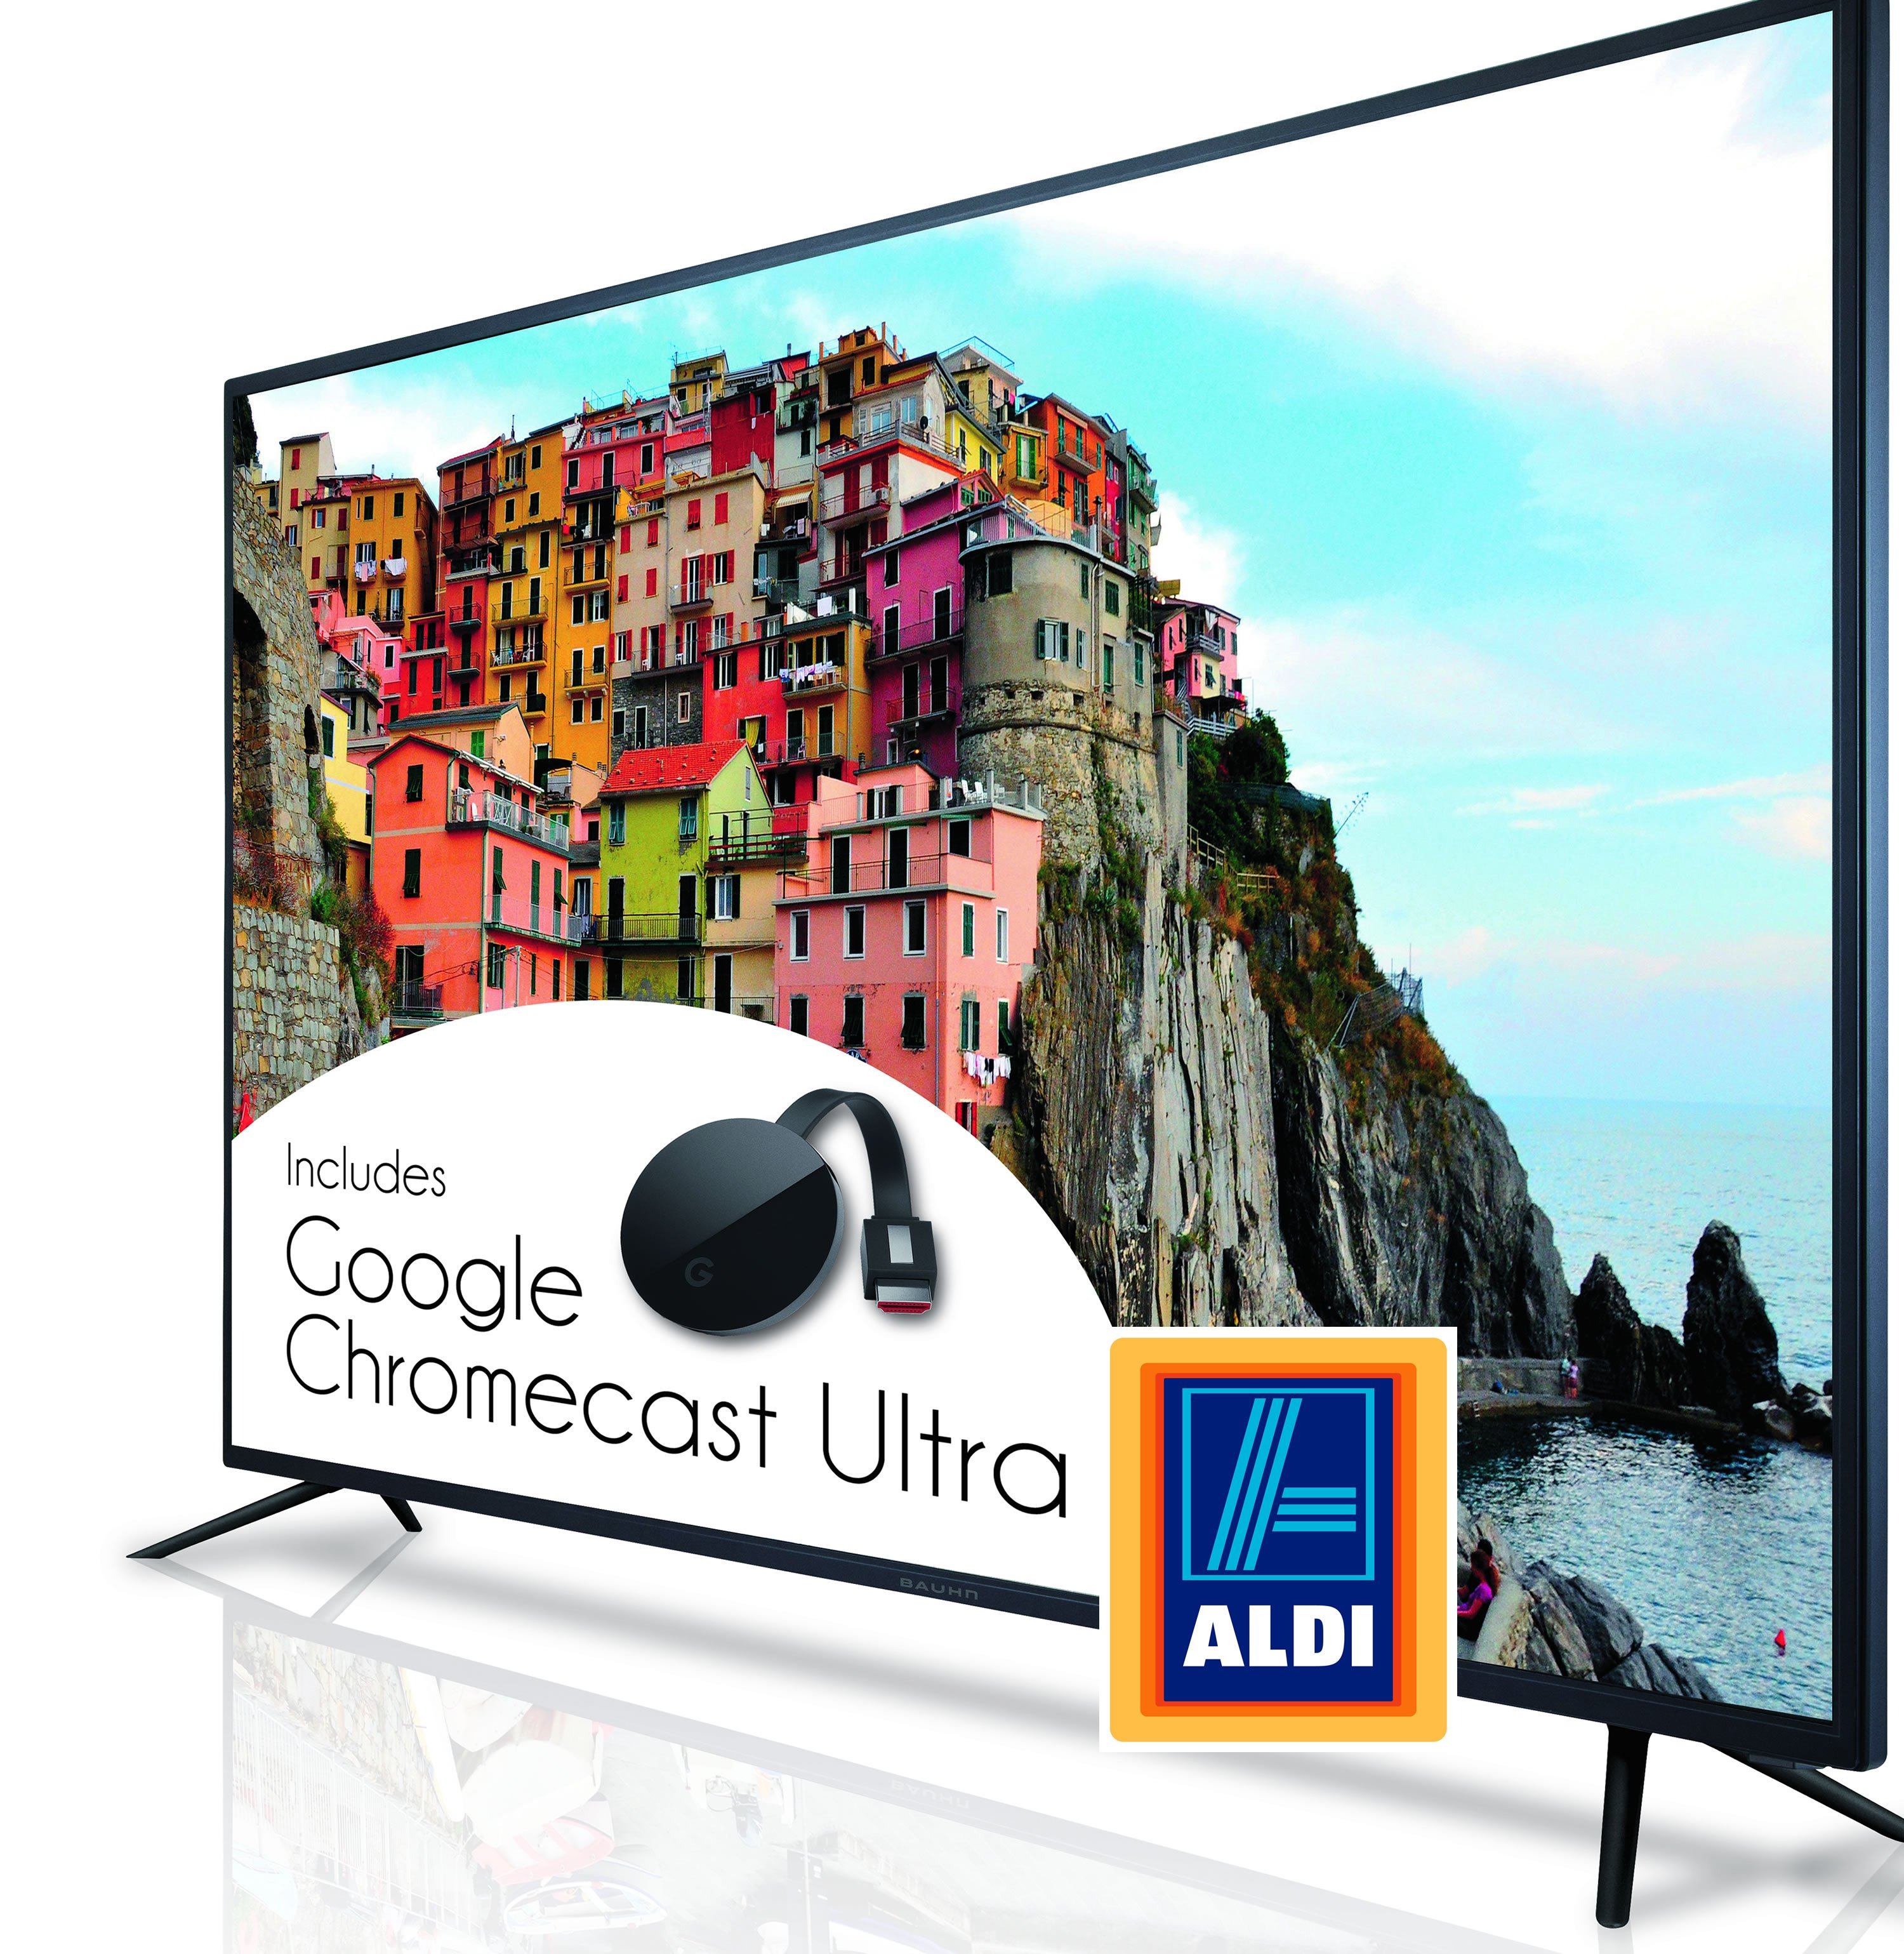 Aldi Bauhn Chromecast TV Hisense Lift TV Prices By Up To 100% As They Struggle To Make A Profit